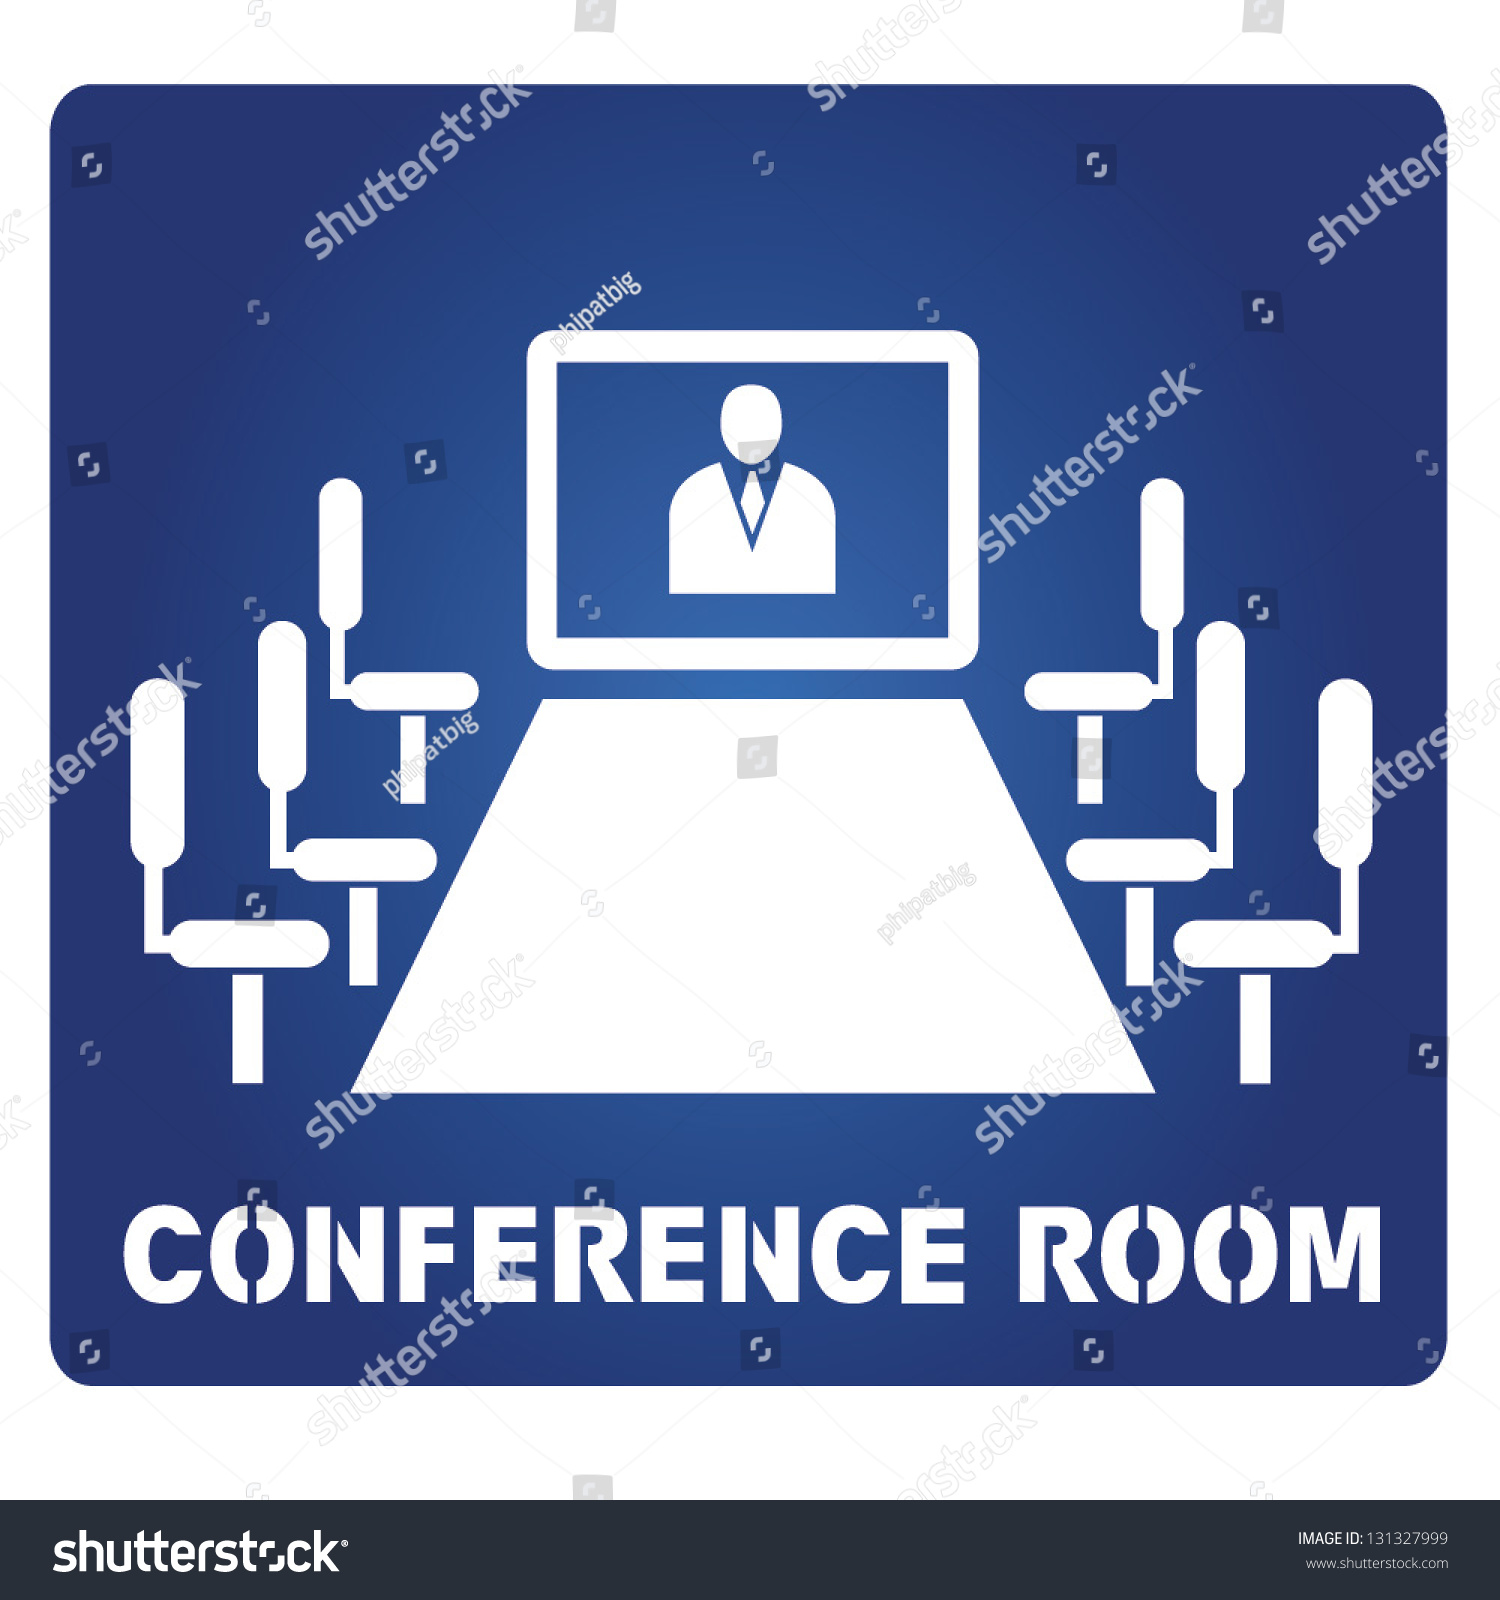 conference room clipart free - photo #26